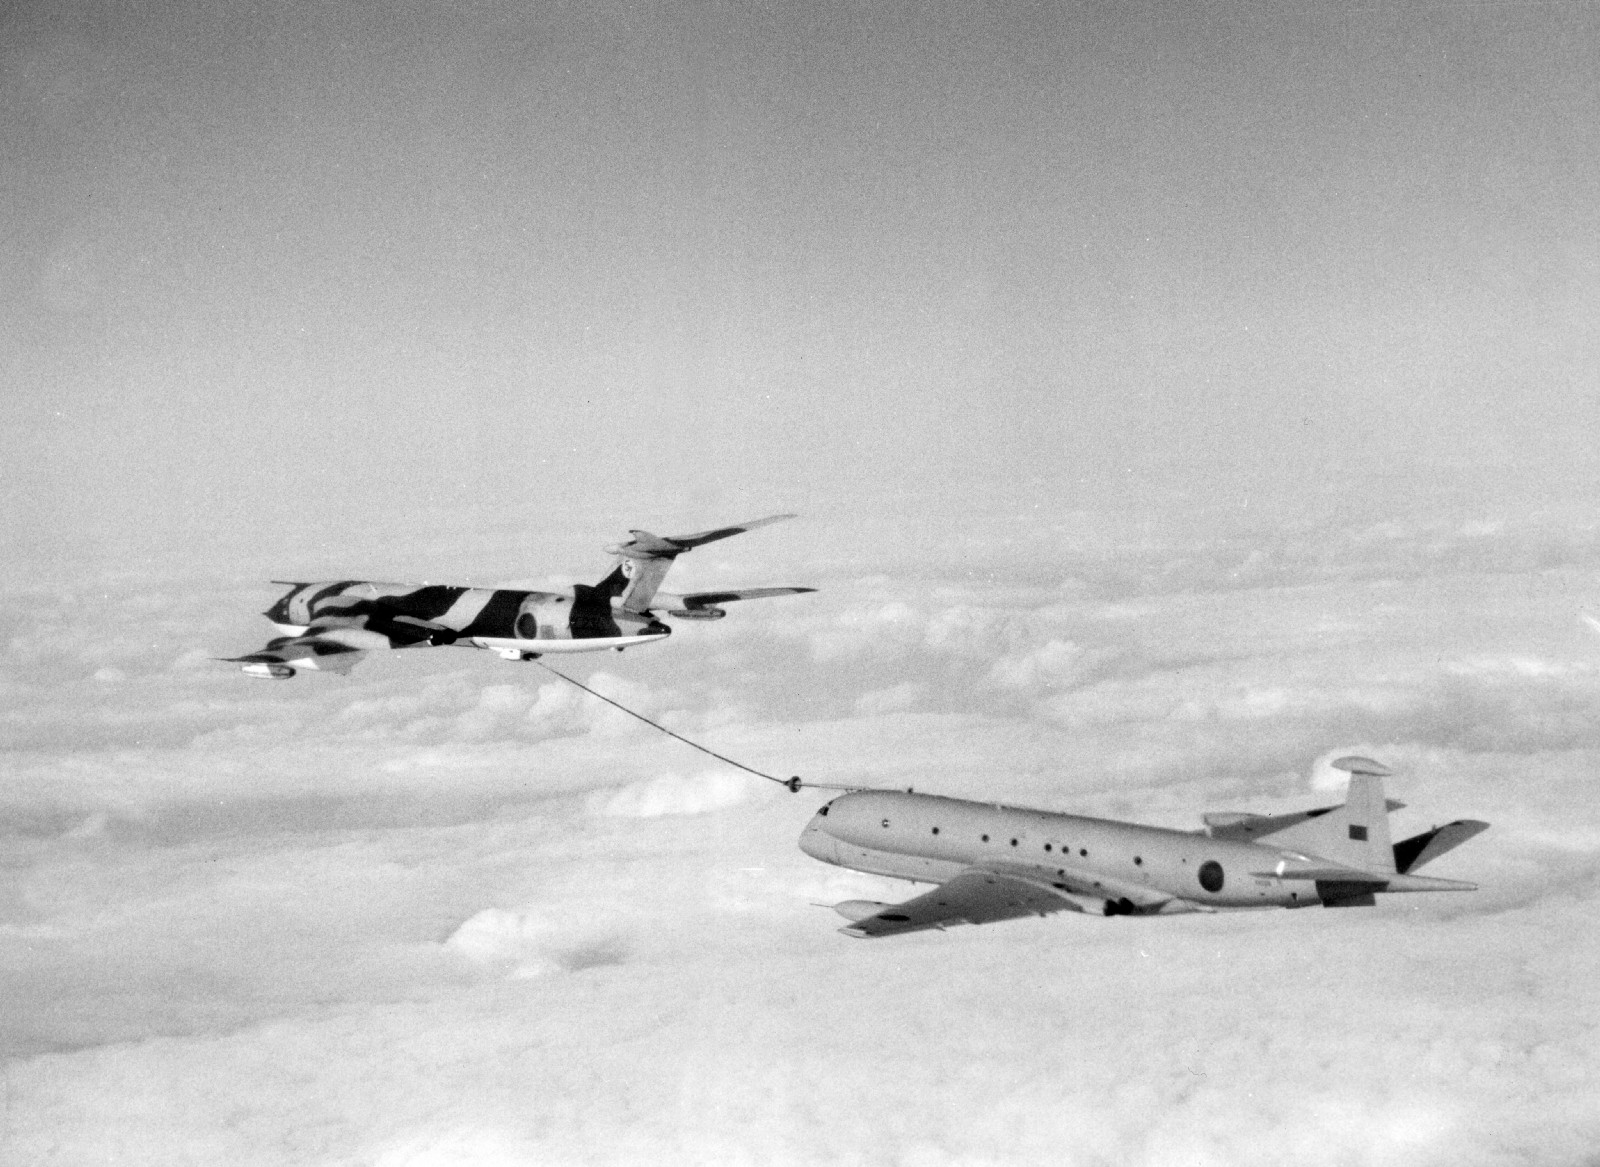 9f9f7c5b057 A Victor tanker of 57 Squadron refuelling a Nimrod MR.2 of the Kinloss  Maritime Wing during an operation over the South Atlantic in 1982.